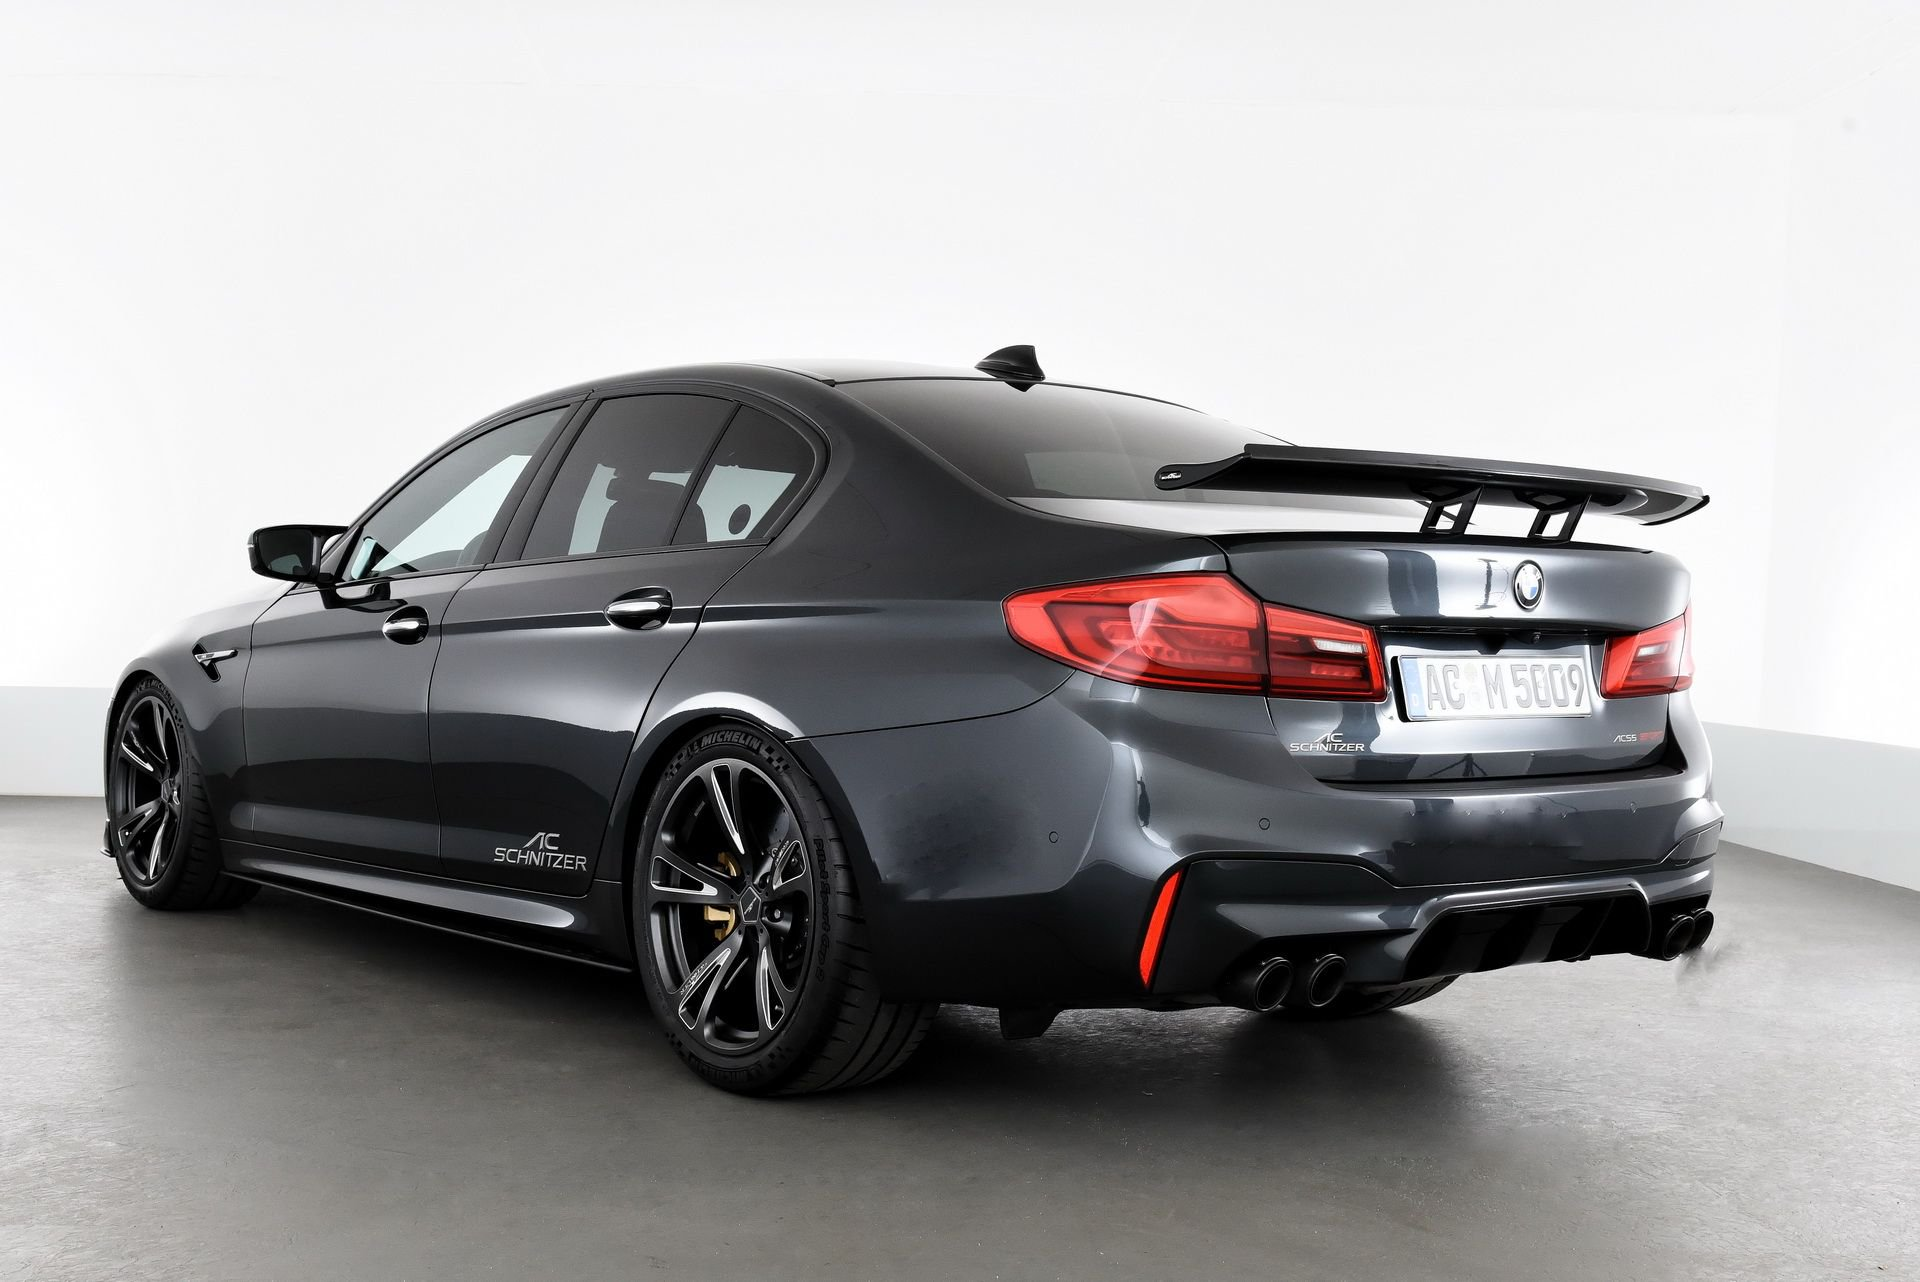 BMW_M5_Prototype_by_AC-Schnitzer_Sachsenring_0017